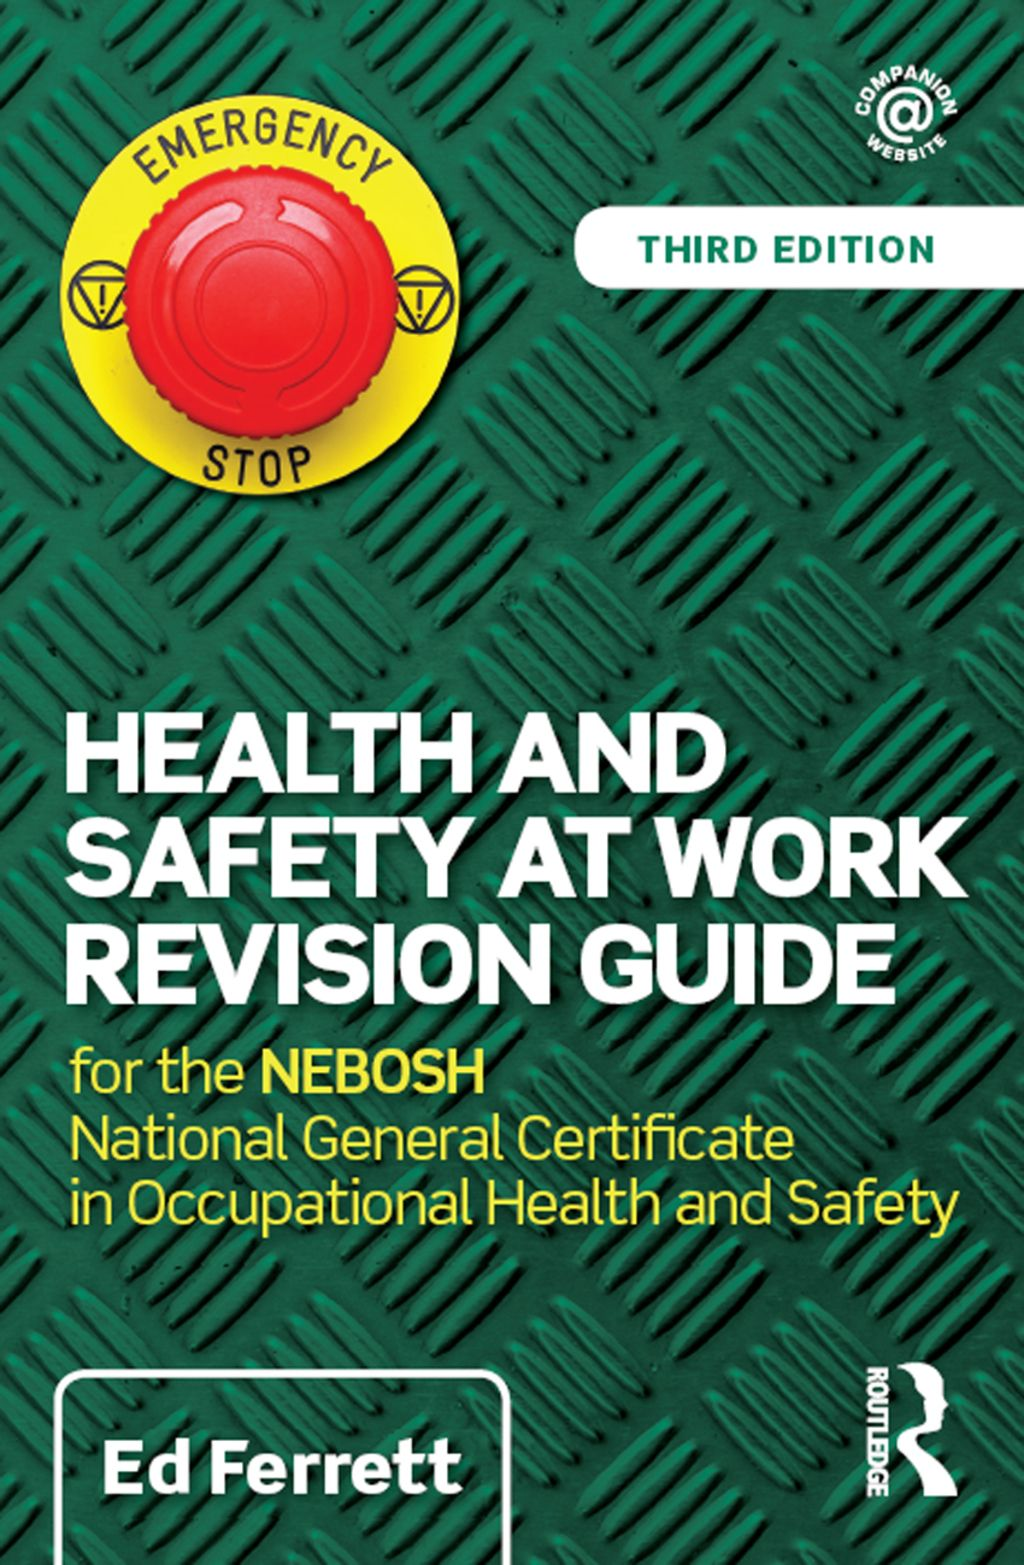 Health and Safety at Work Revision Guide (eBook Rental